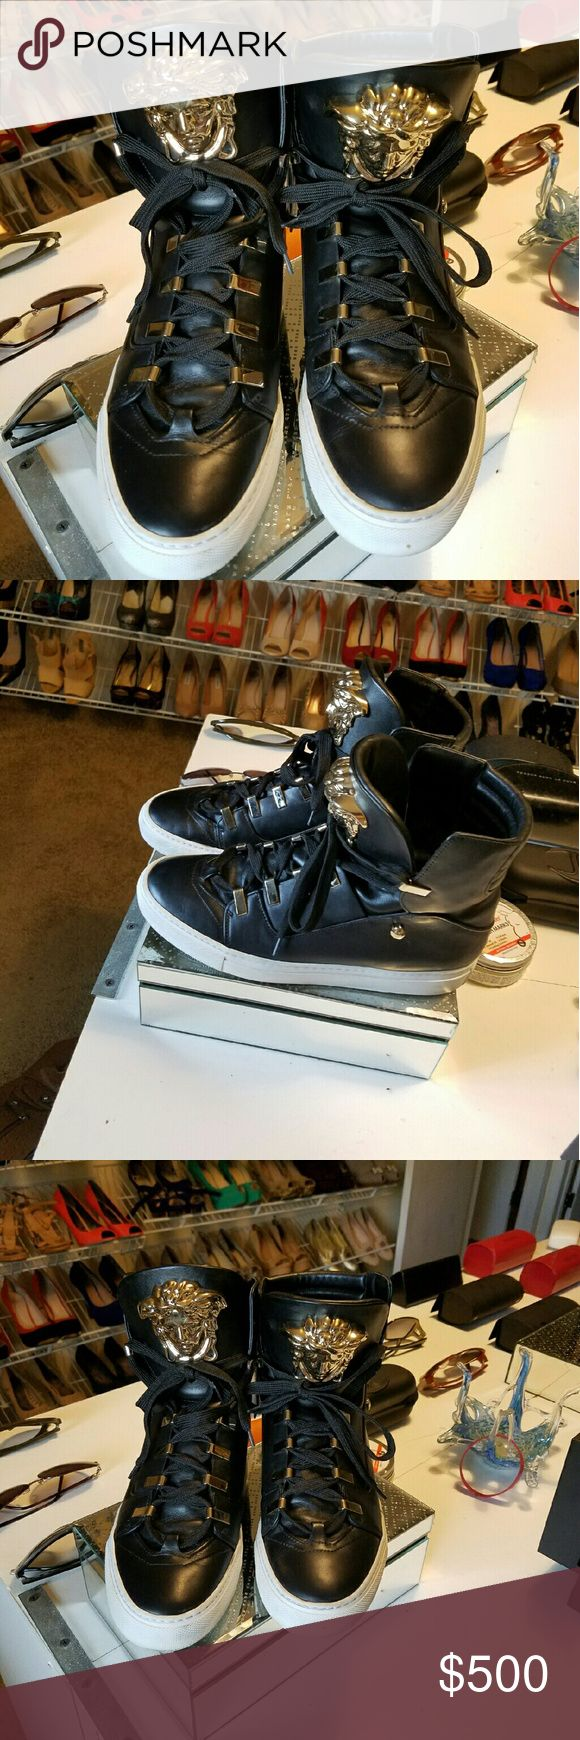 Versace sneakers this season black and gold Black and gold this season wore once box and duffel bag Versace Shoes